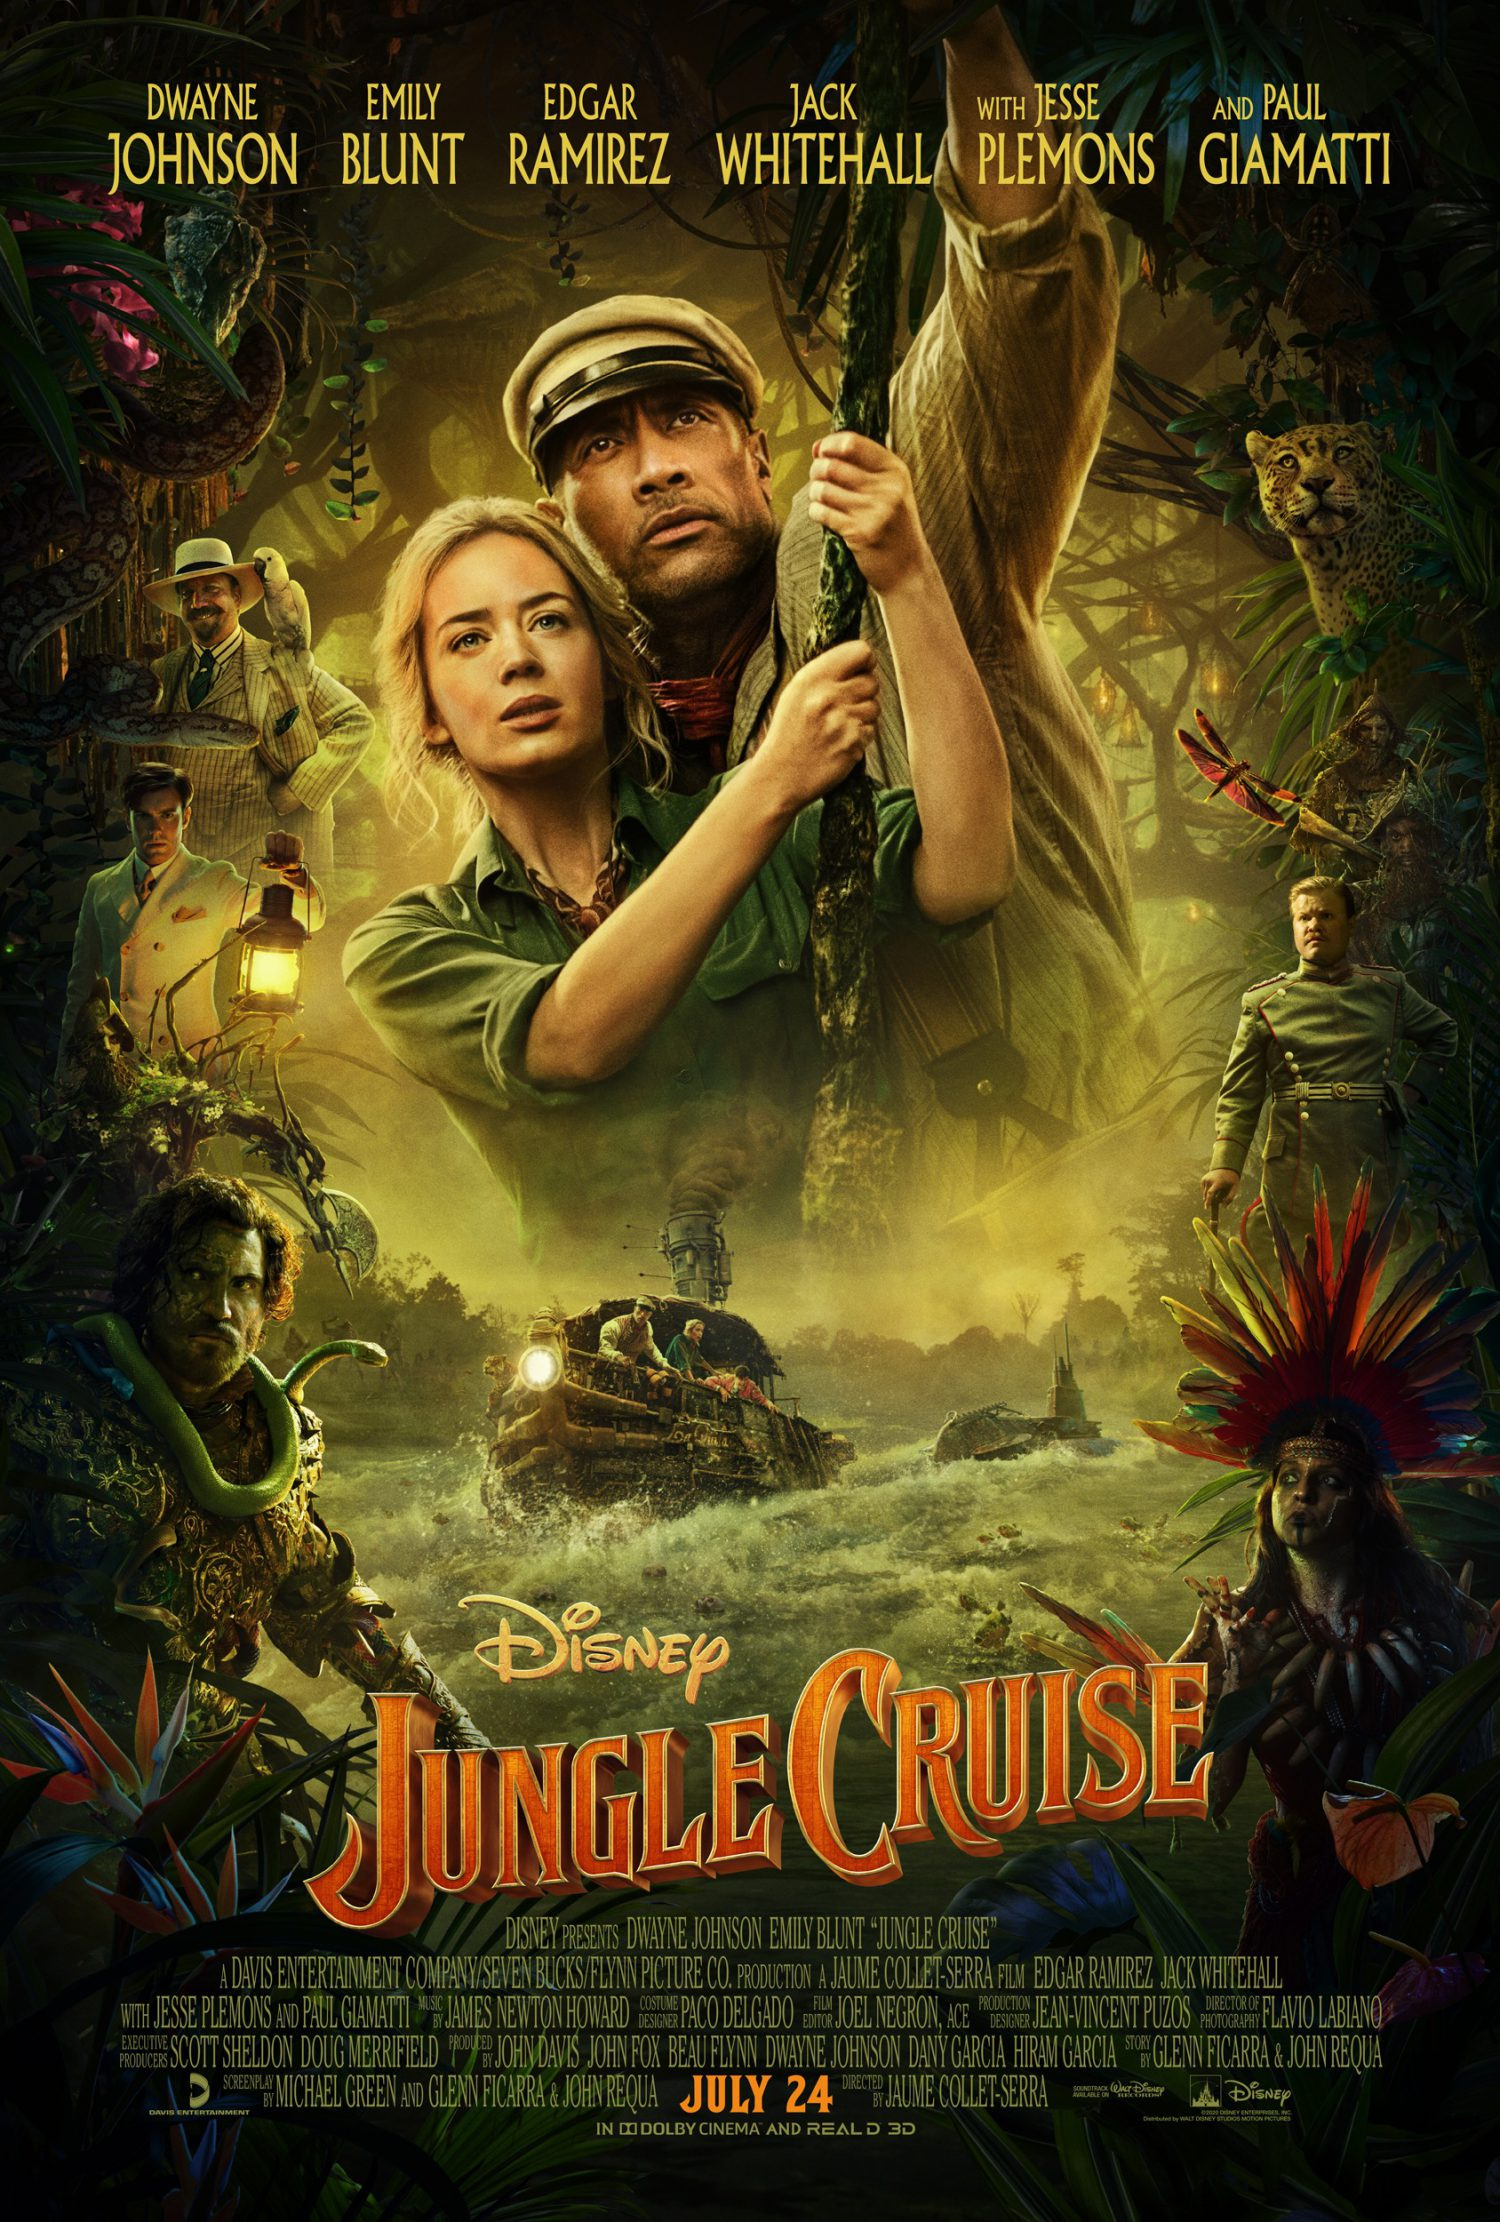 The Jungle Cruise movie is headed to theaters.